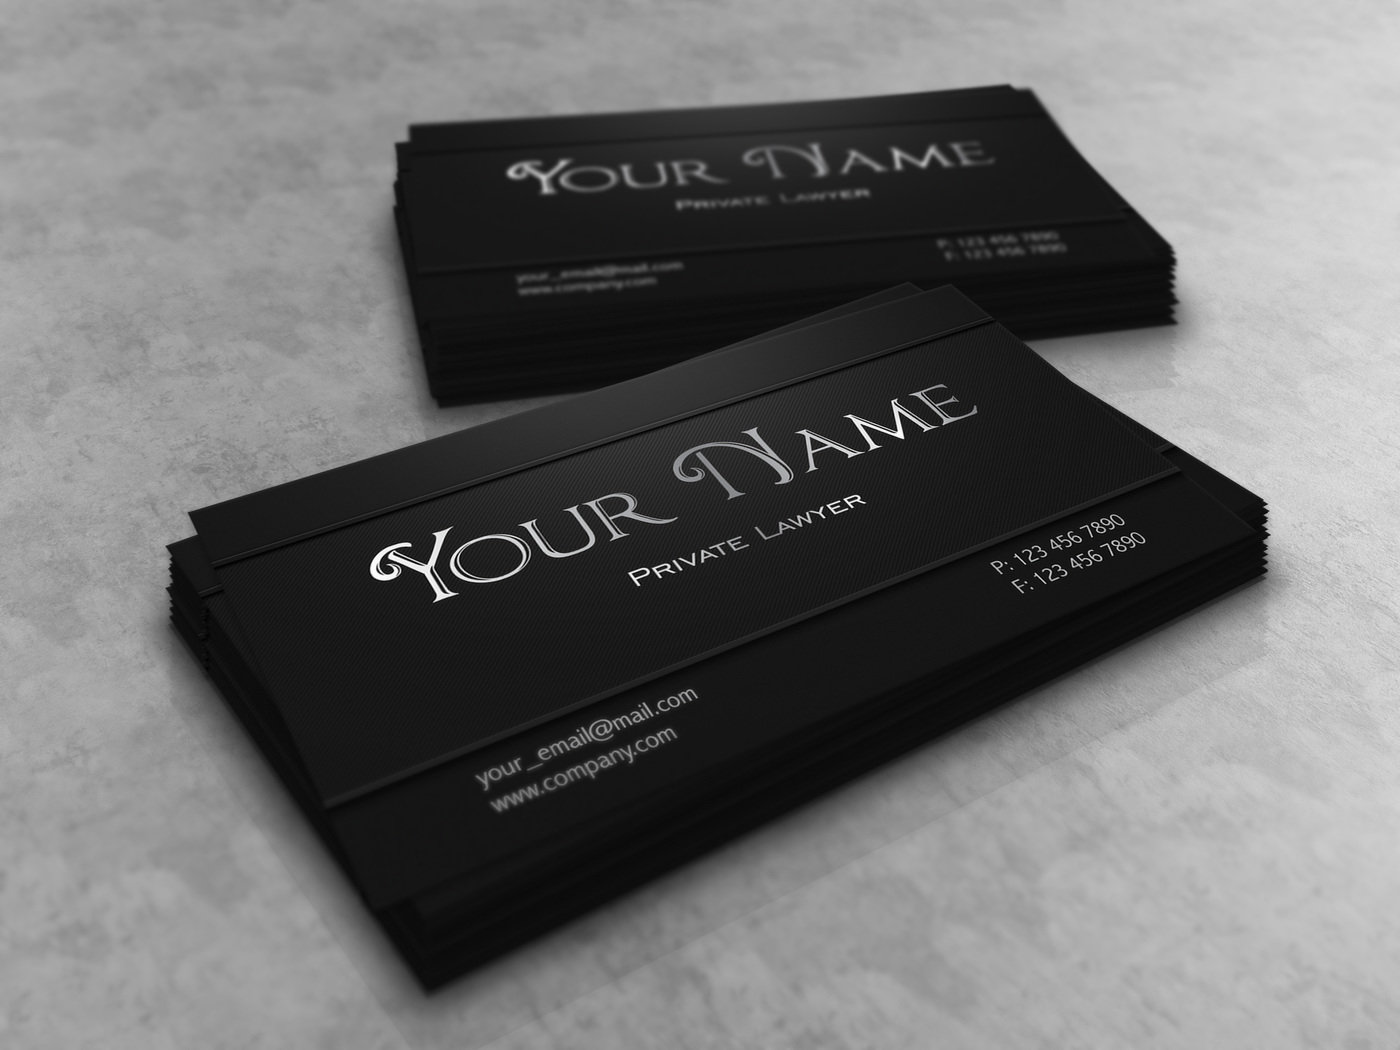 Dark lawyer business card template by borce markoski at coroflot cheaphphosting Gallery